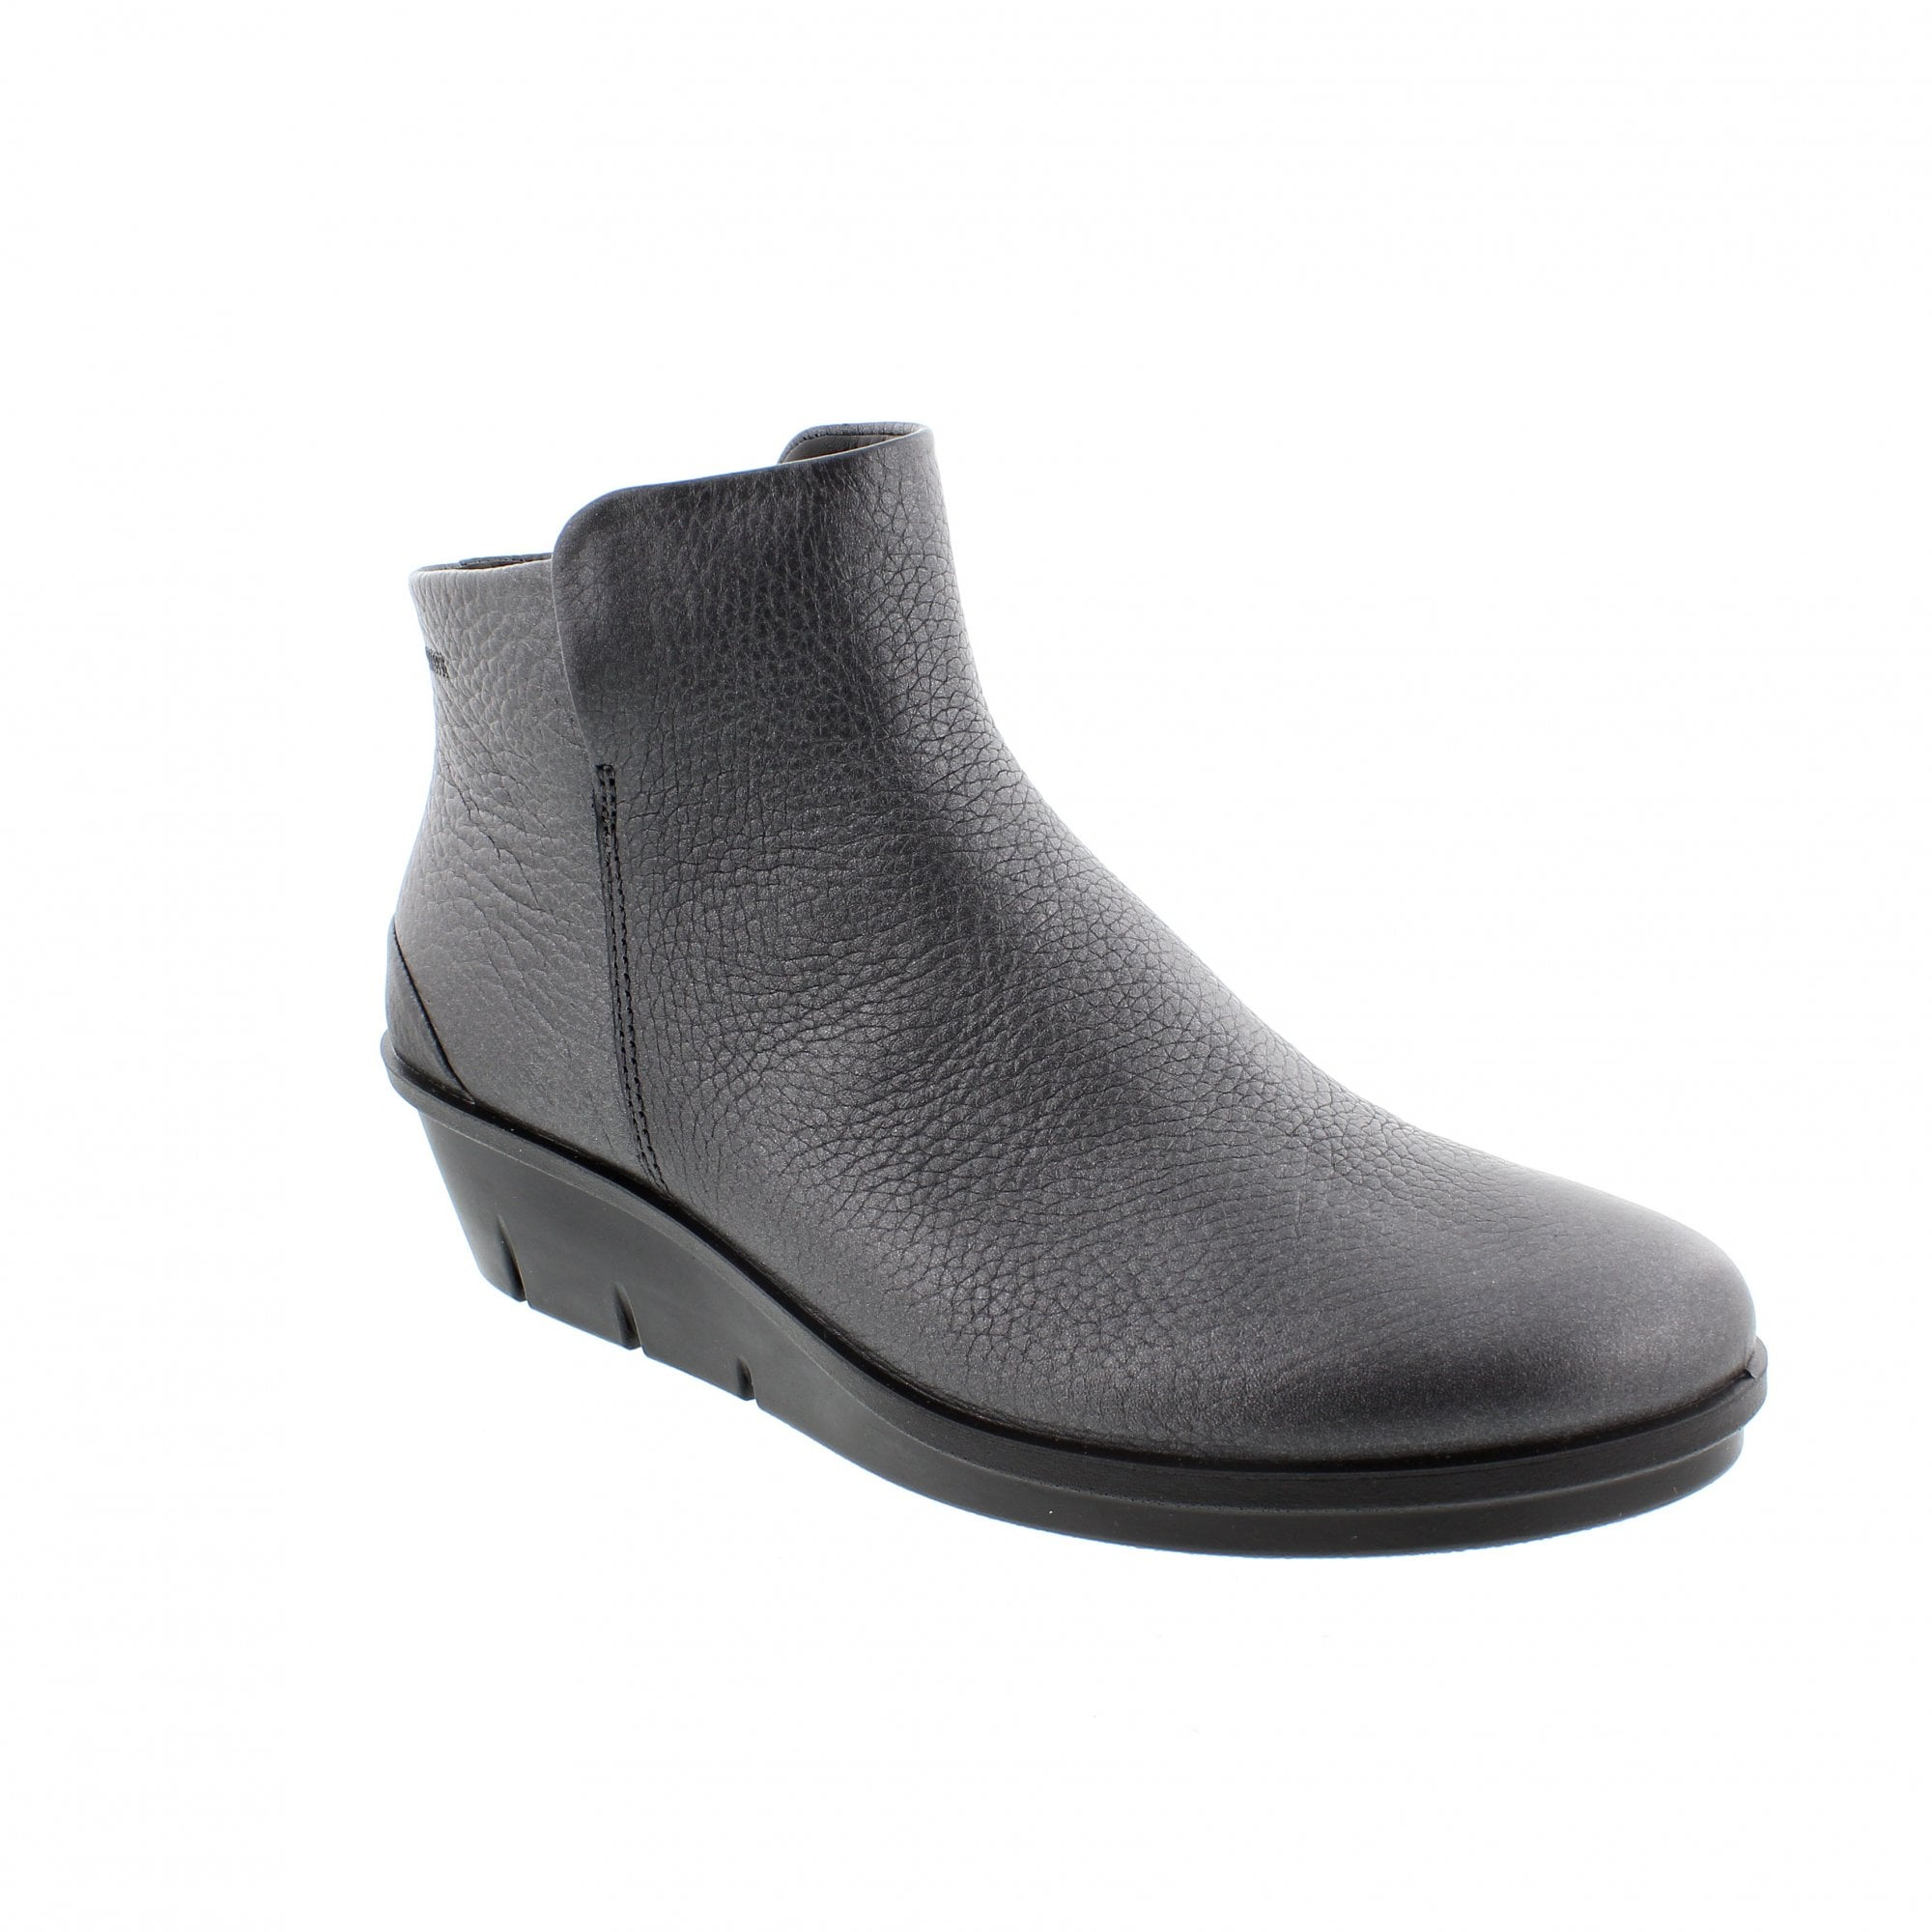 Ecco Skyler Womens Ankle Boots 286013